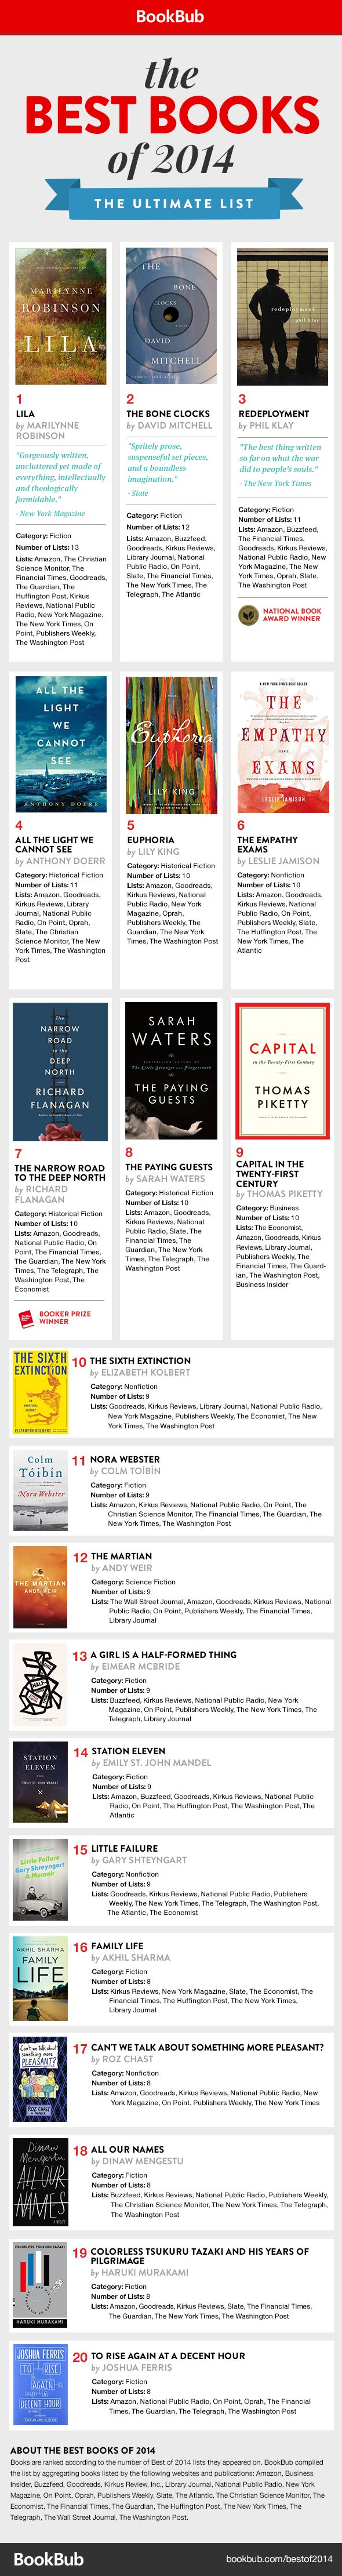 INFOGRAPHIC: The Best Books of 2014